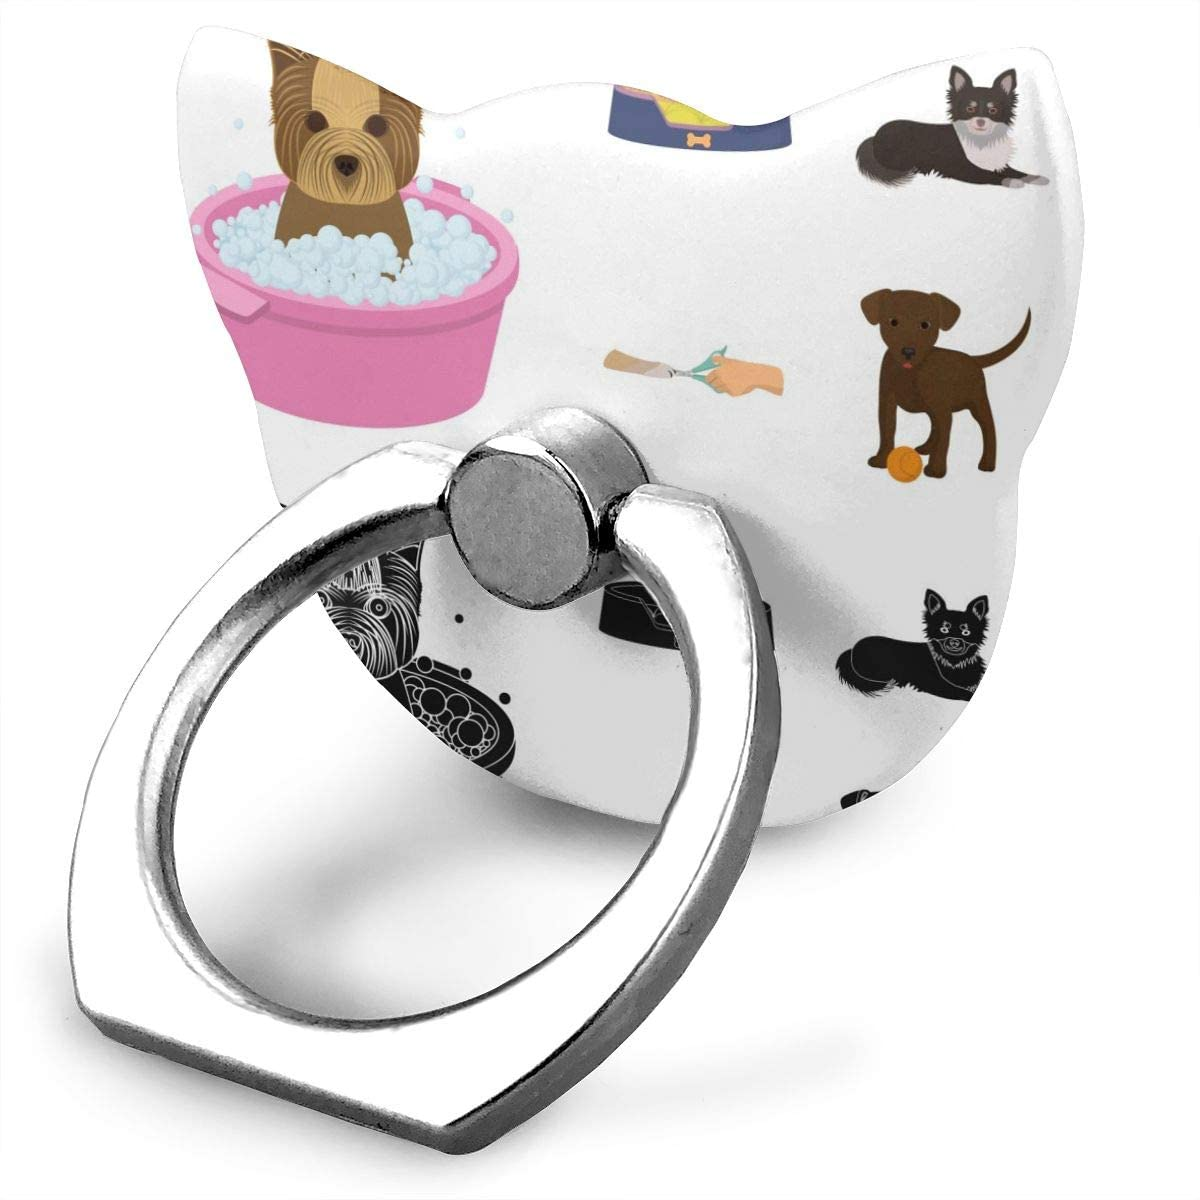 Cat Cell Phone Ring Holder, Ring Phone Holder Trendy for A Pet Cat Ring Holder for Cell Phone, Phone Grip Holder, Phone Ring Stand Finger Kickstand 360° Rotation Compatible with All Smartphones